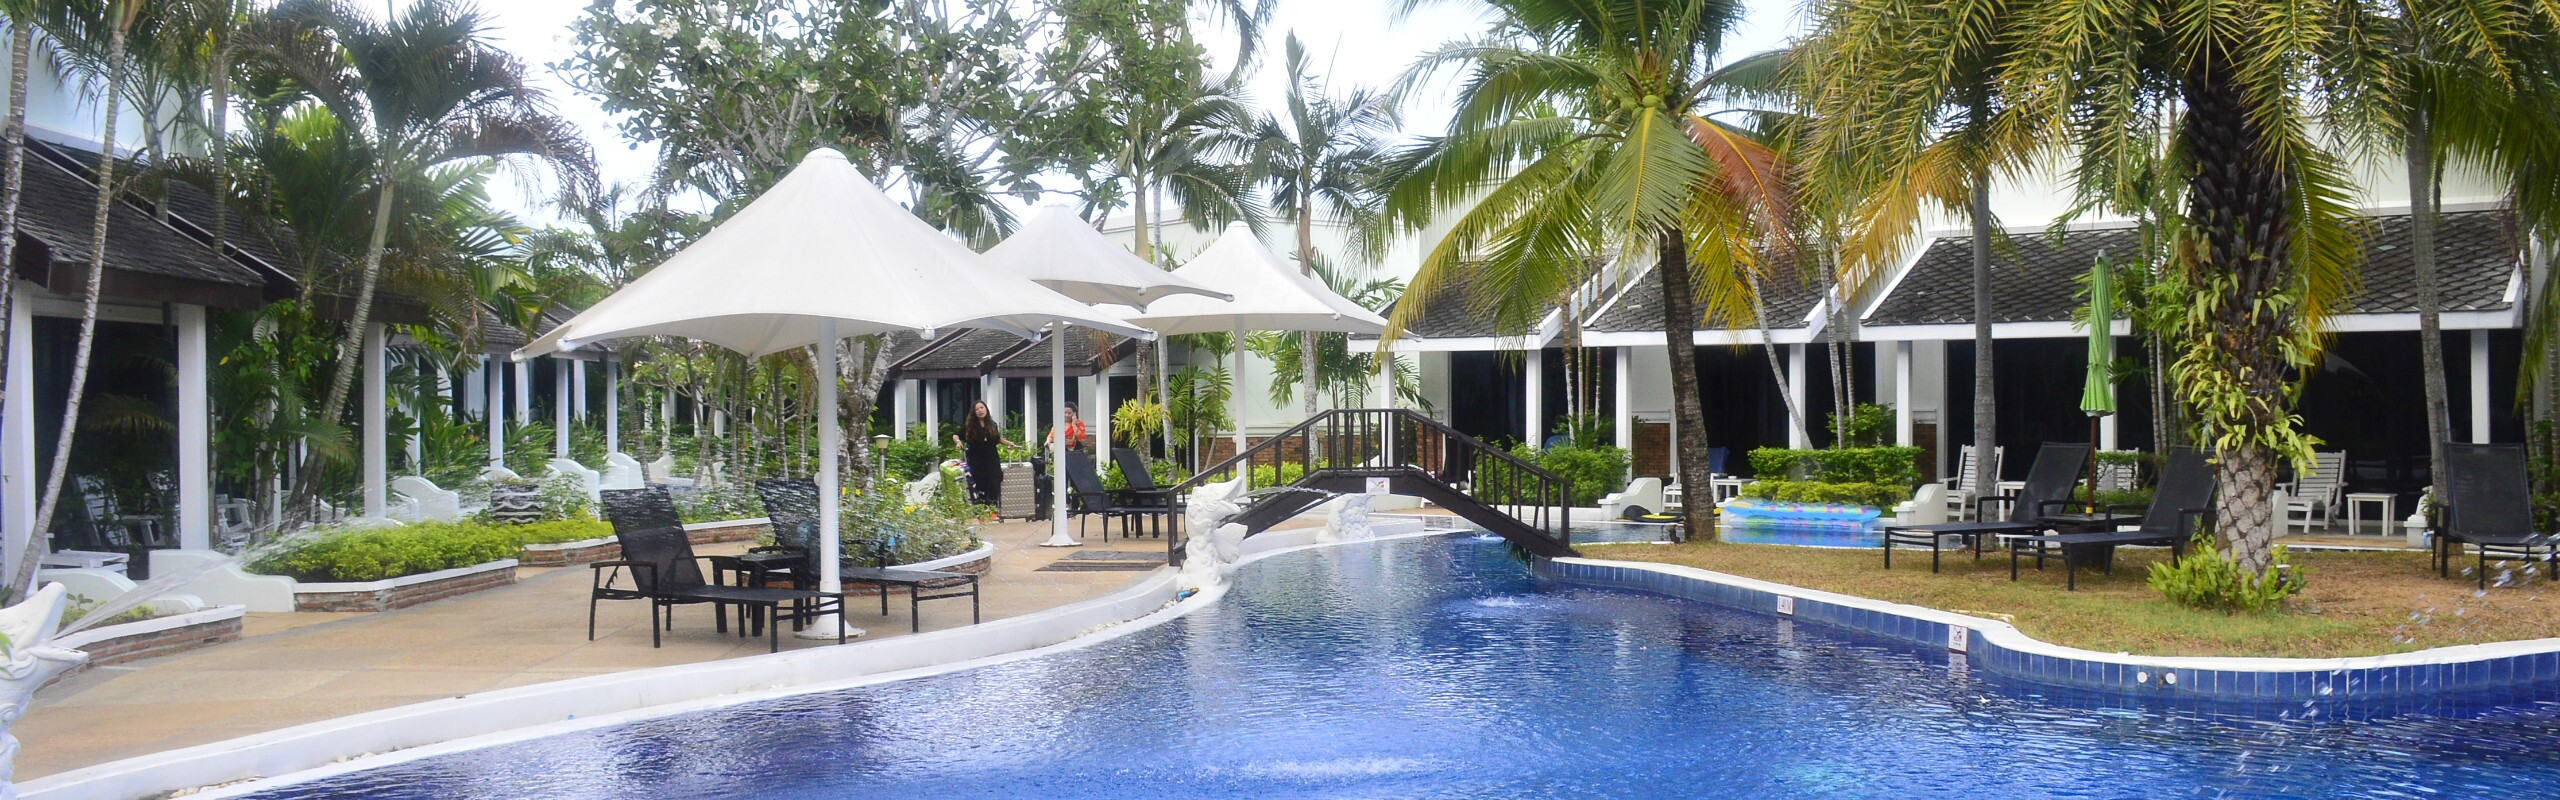 Top Hotels in Thailand